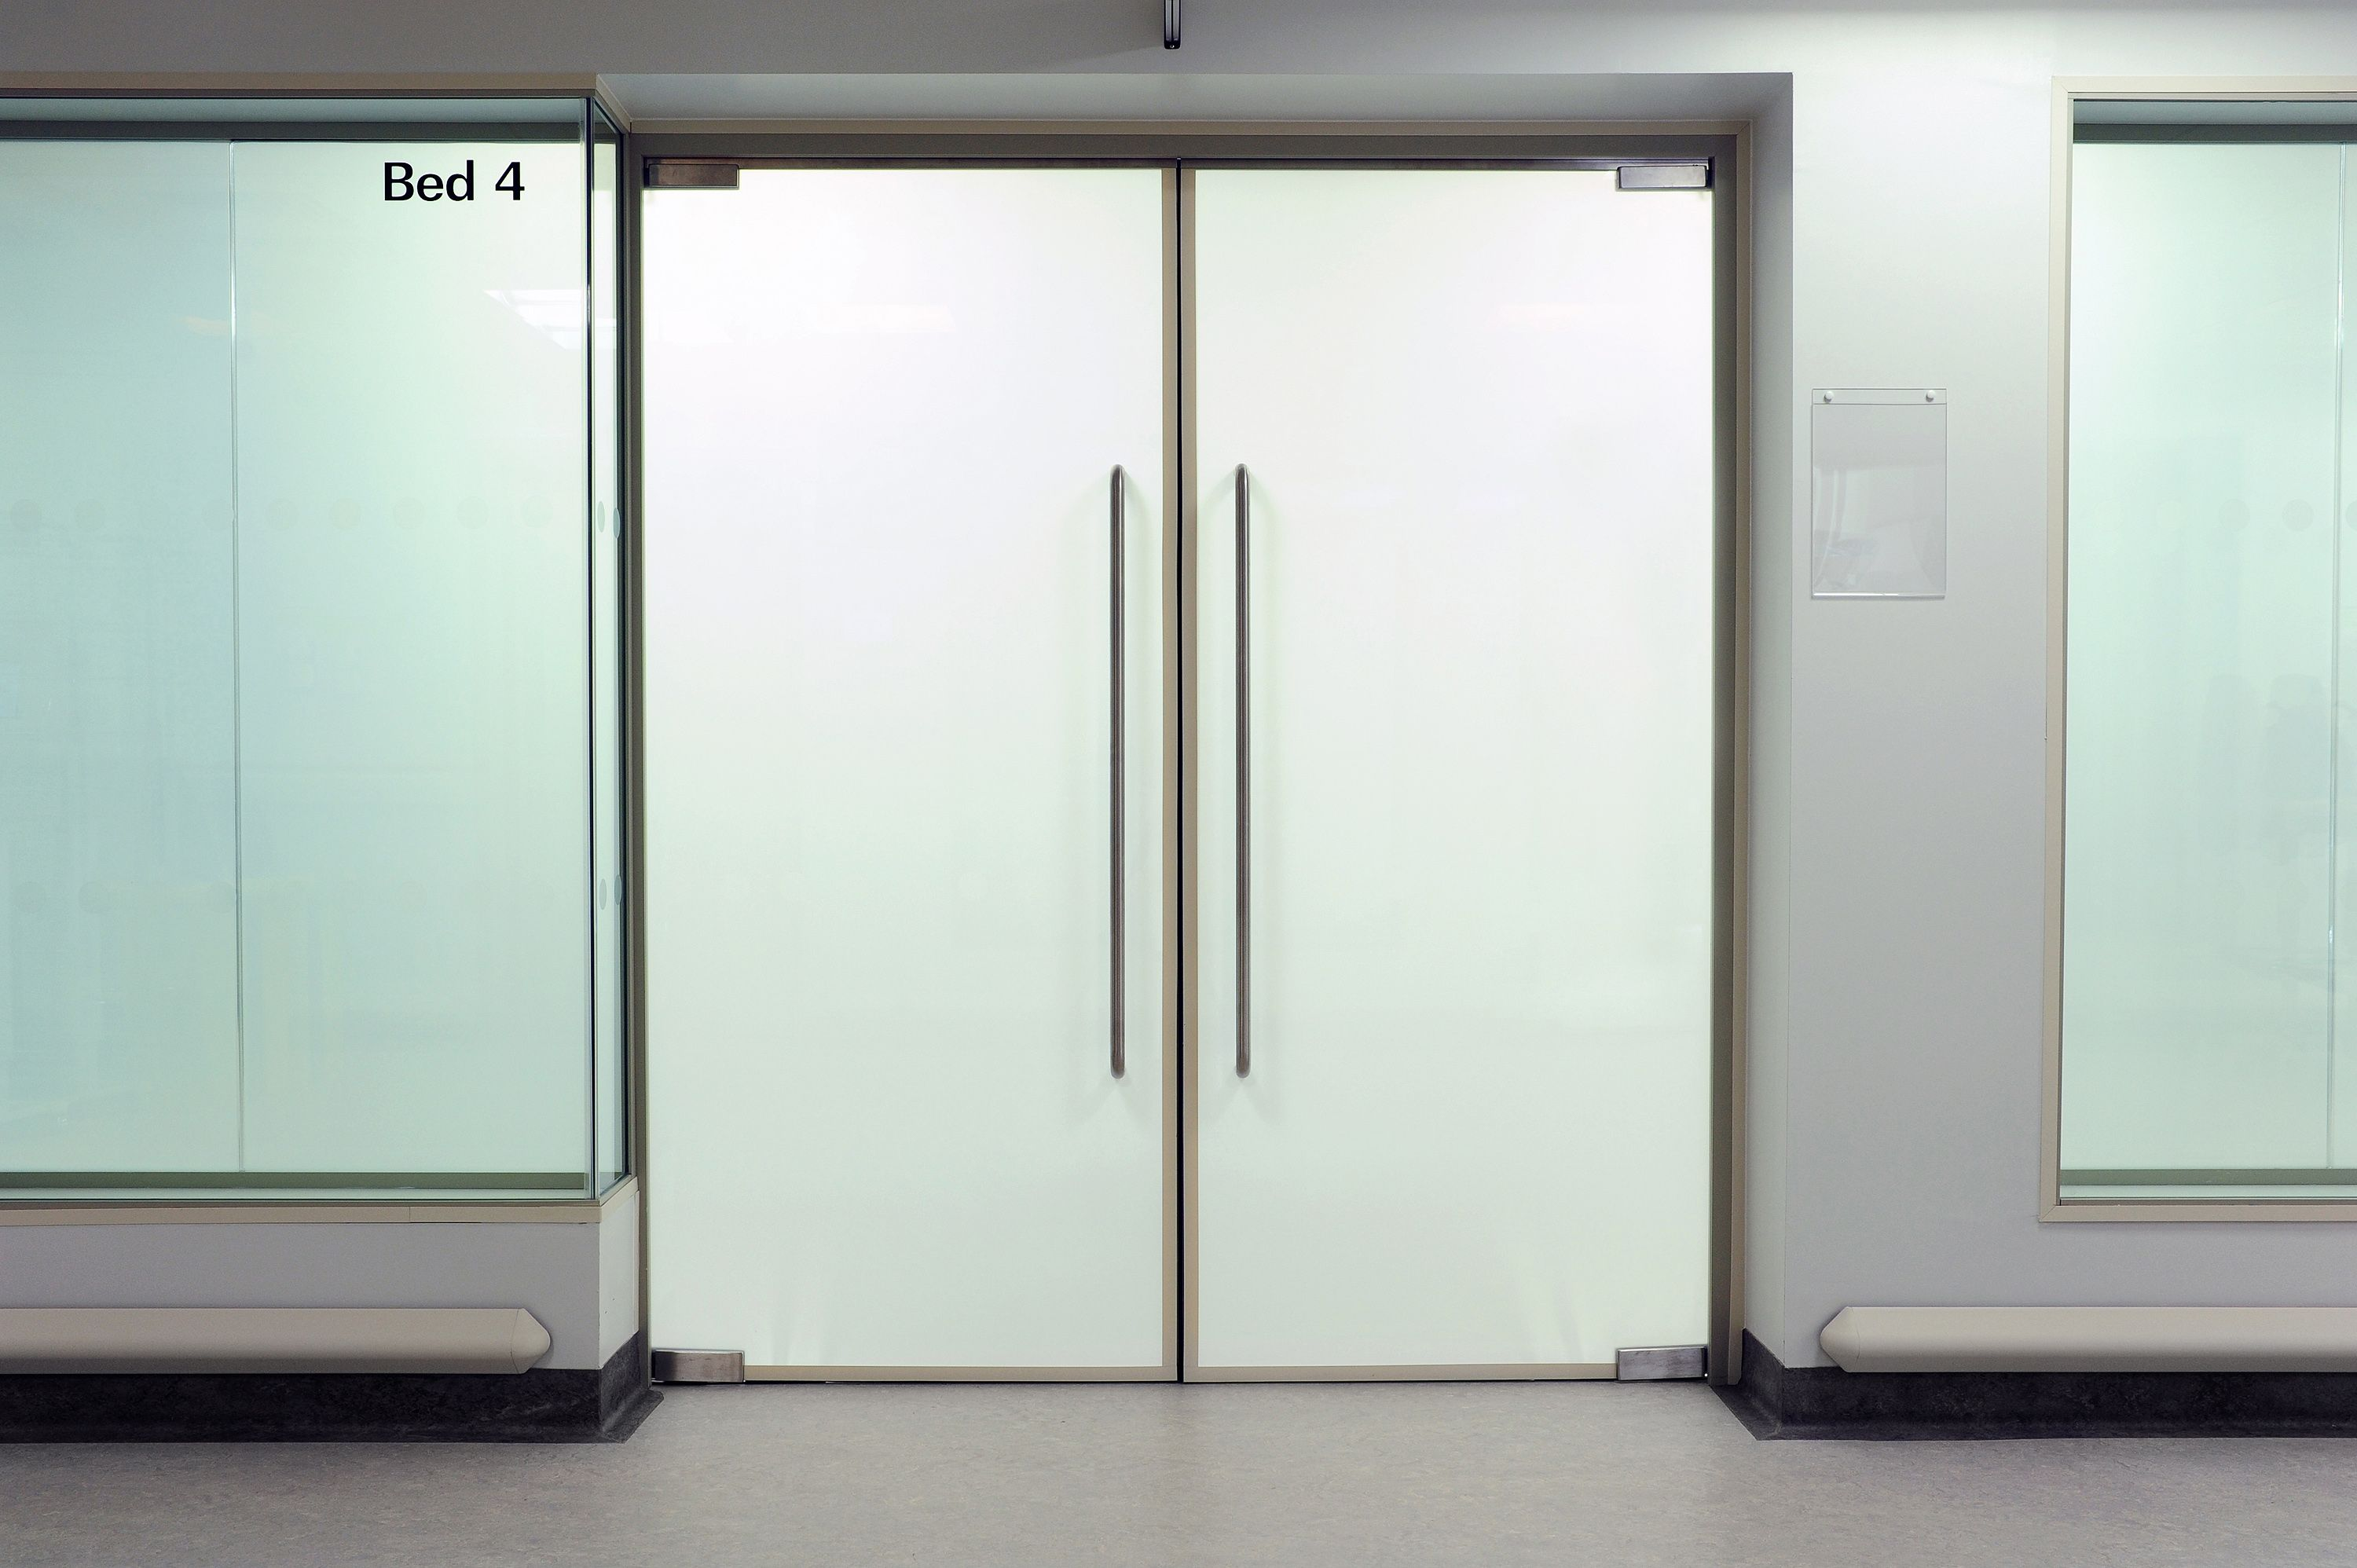 Frosted Glass Office Door Design Inspiration 26230 Ideas ...